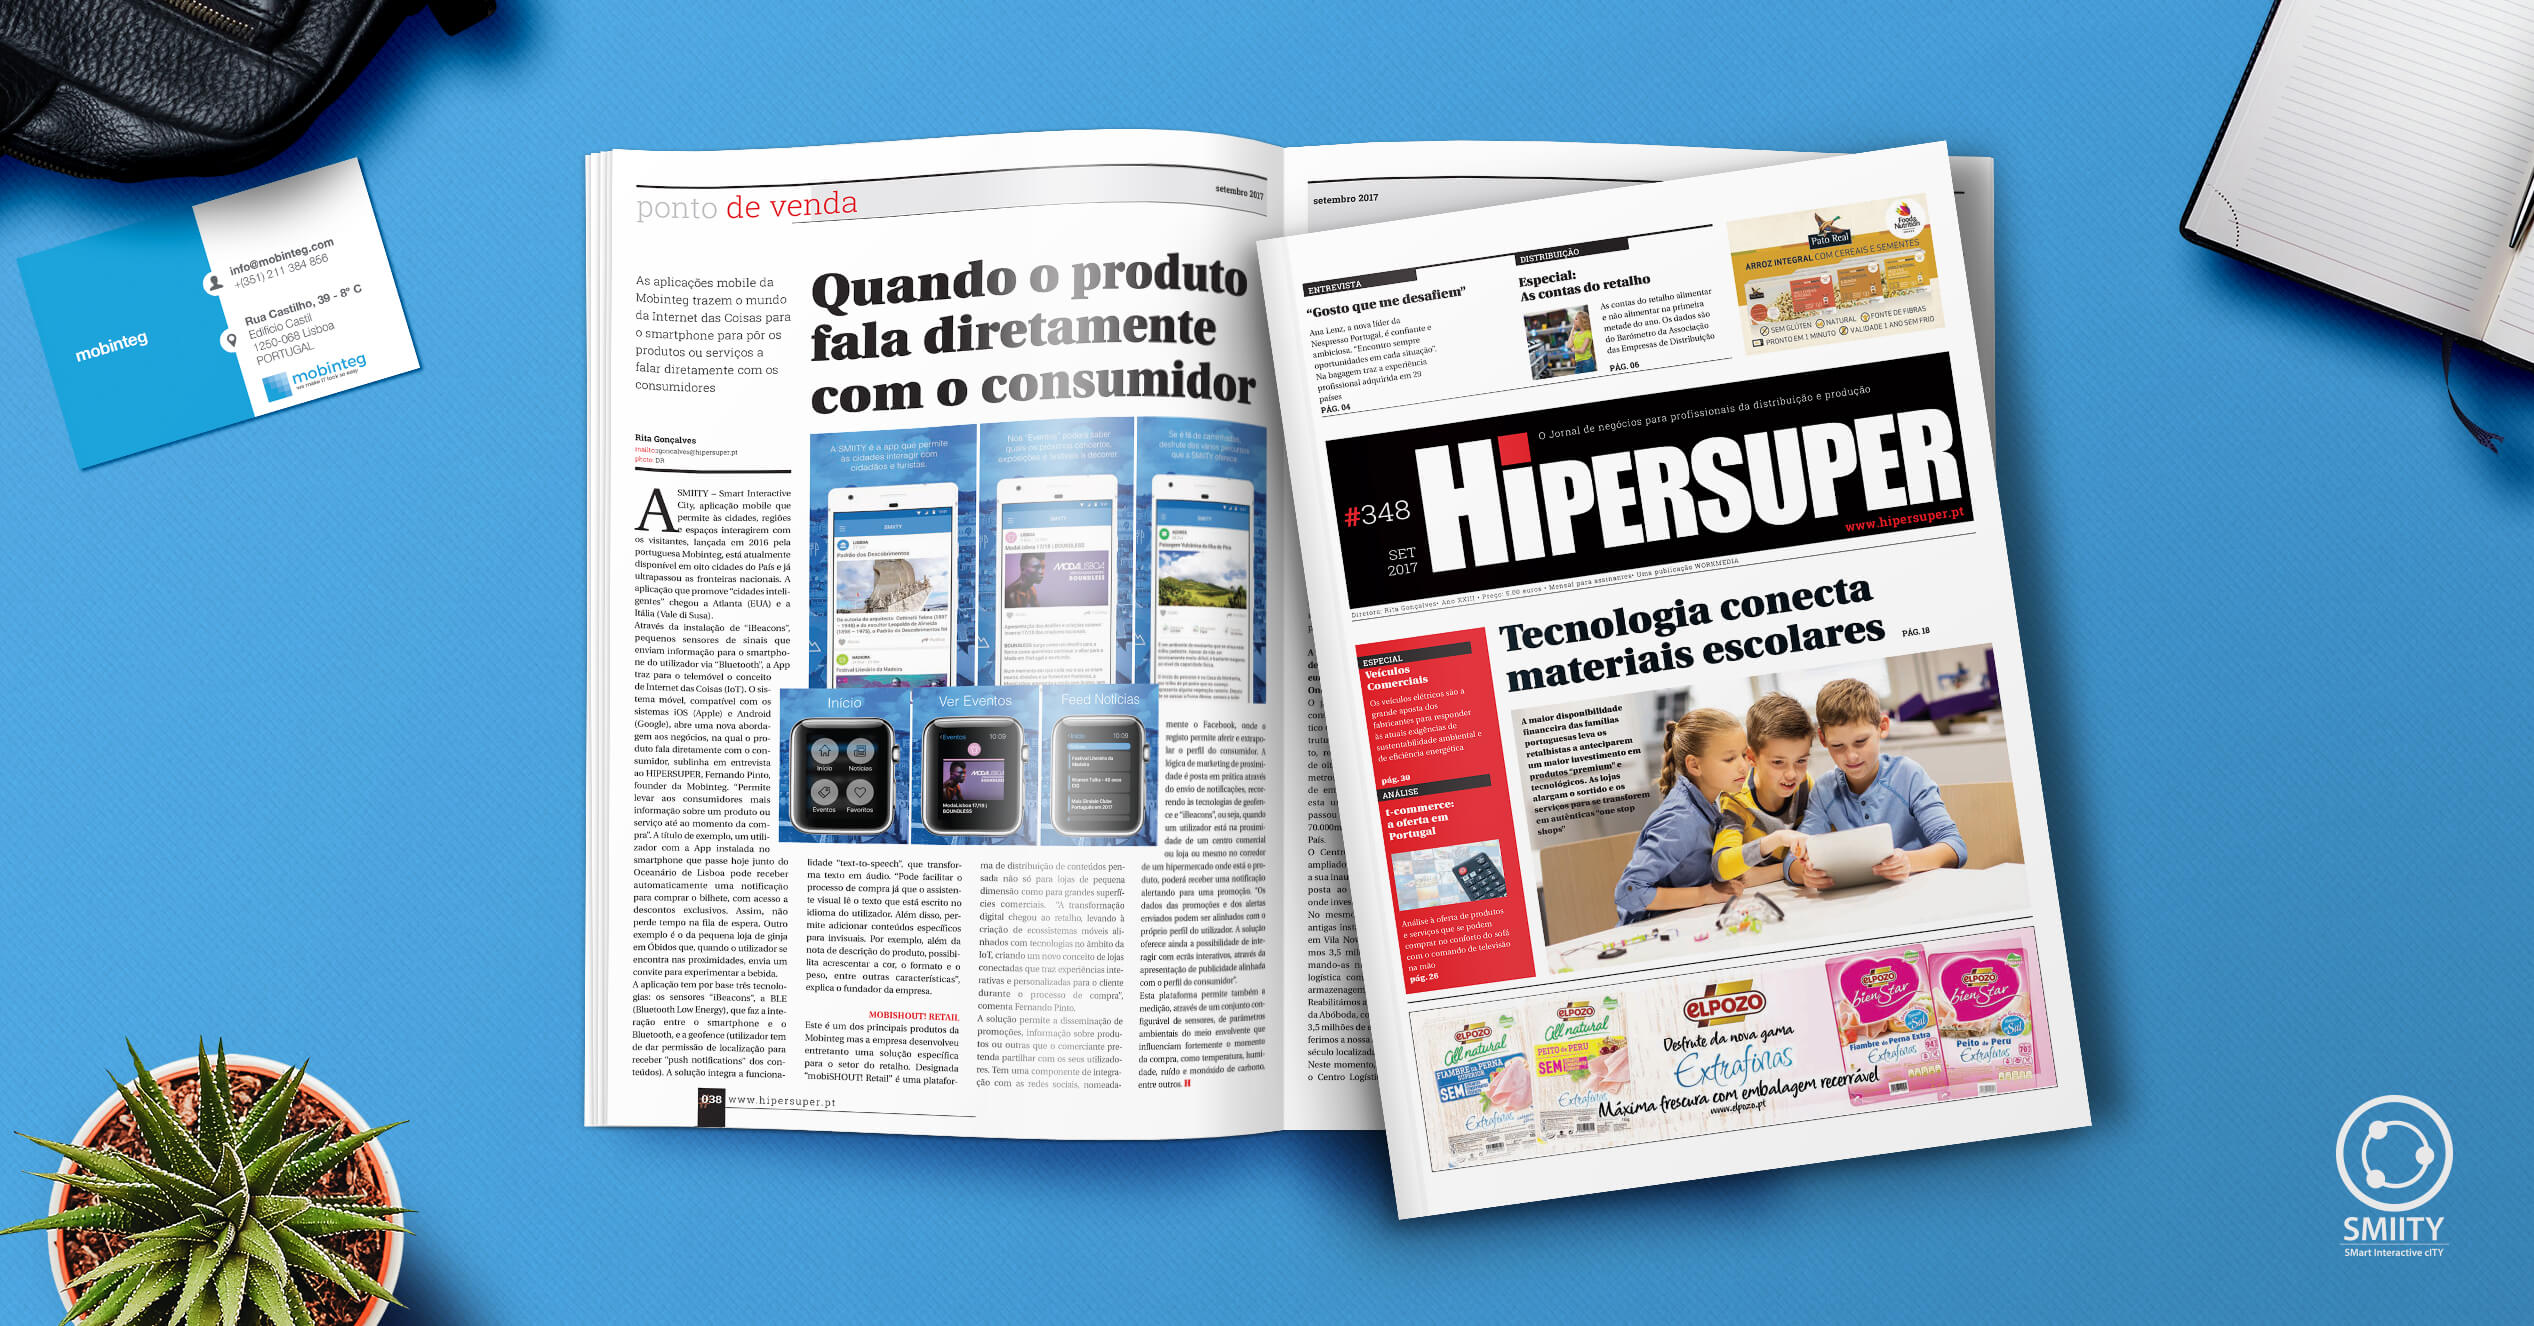 """When the product speaks directly to the consumer"": mobinteg in Jornal Hipersuper"